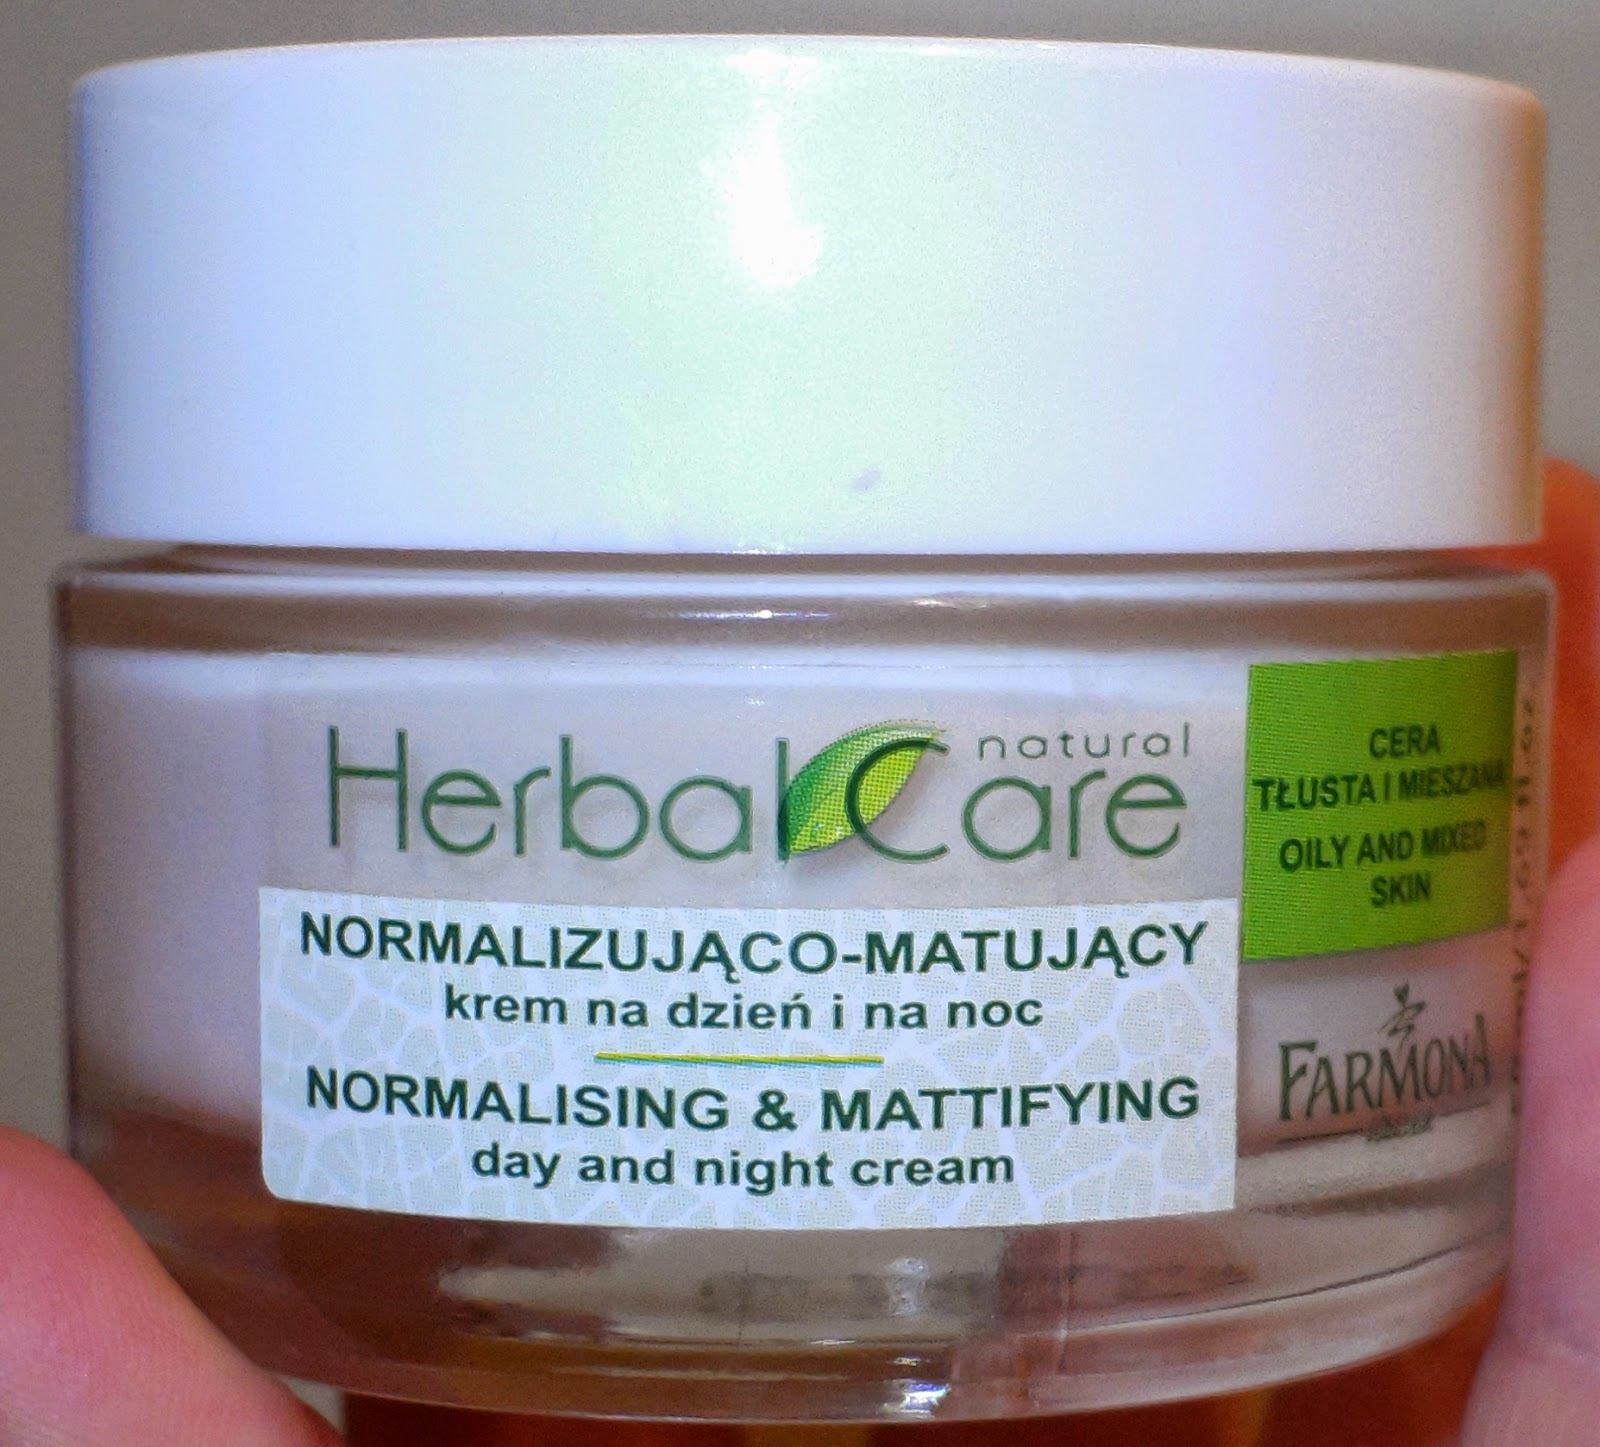 herbal care farmona